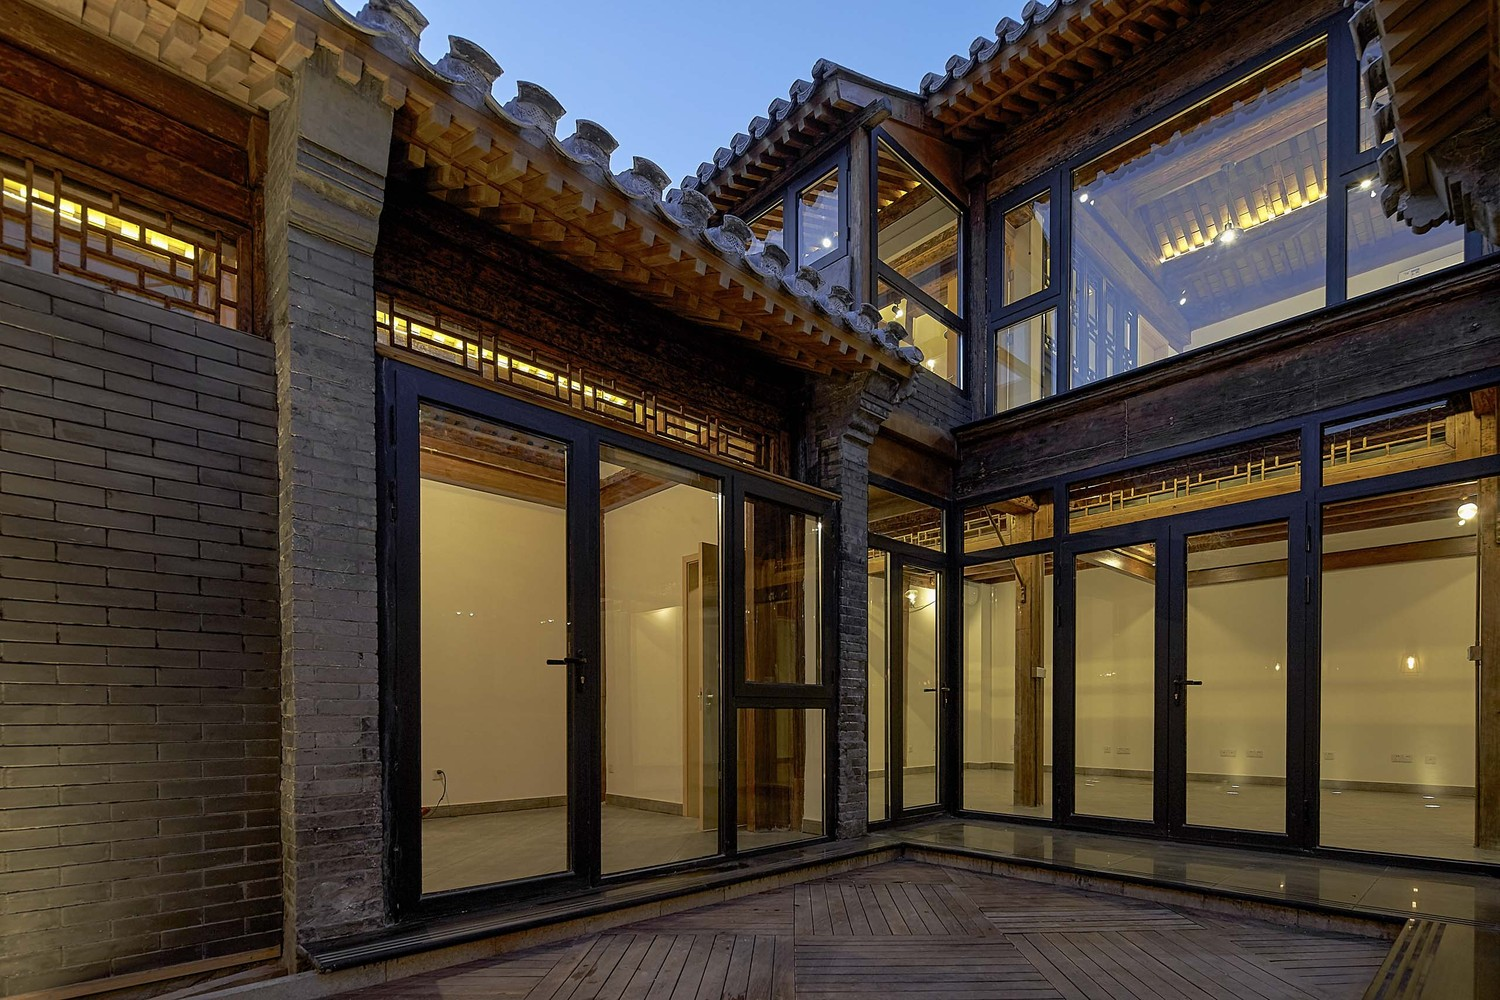 Renovation Facade Gallery Of Hutong Courtyard Renovation At Qianmen Street Super